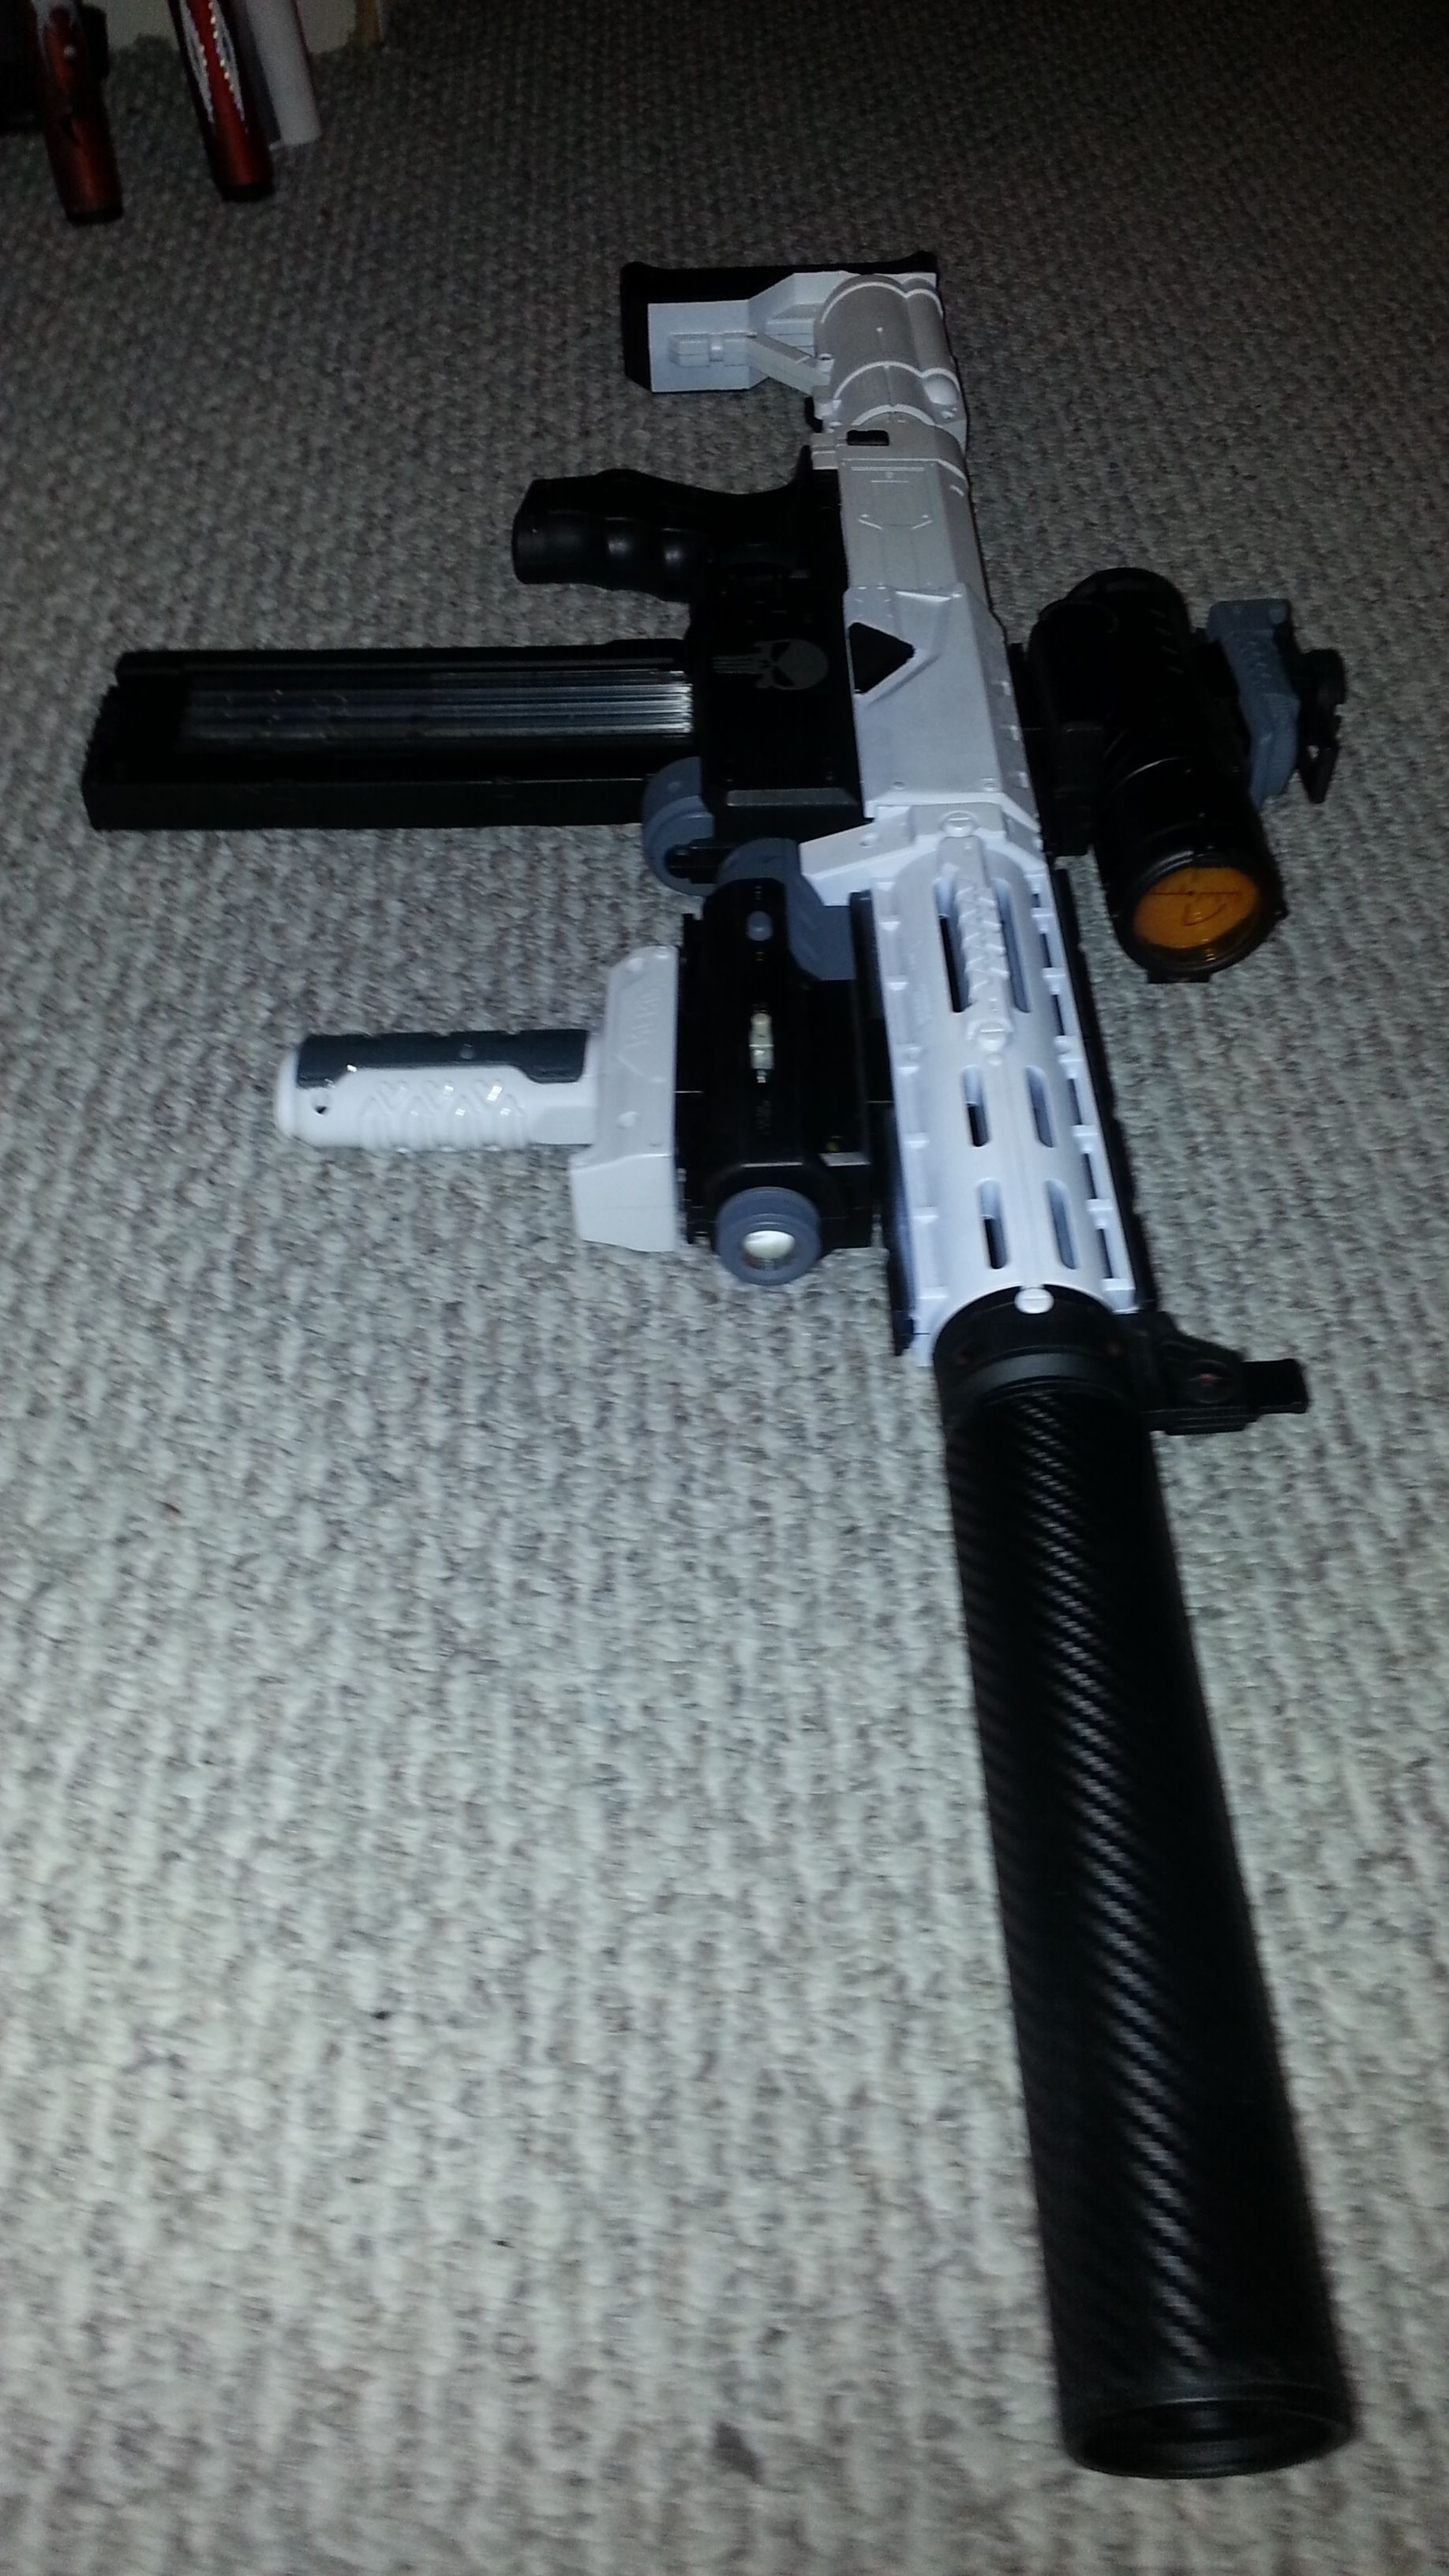 This is my custom Nerf recon with a stock laser sight & grip attachment & a